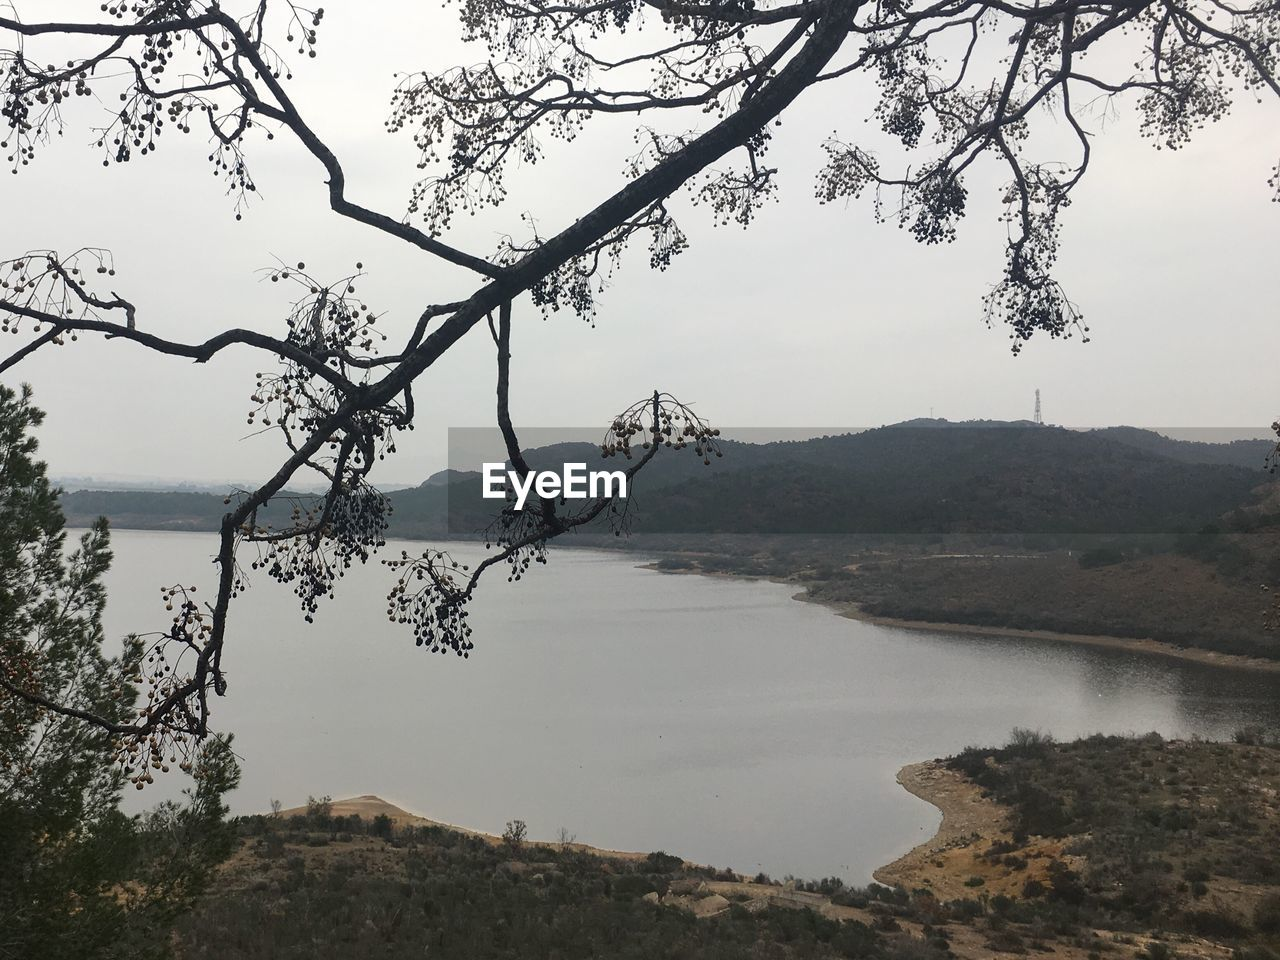 tree, nature, mountain, lake, tranquility, beauty in nature, scenics, tranquil scene, outdoors, water, landscape, no people, day, sky, branch